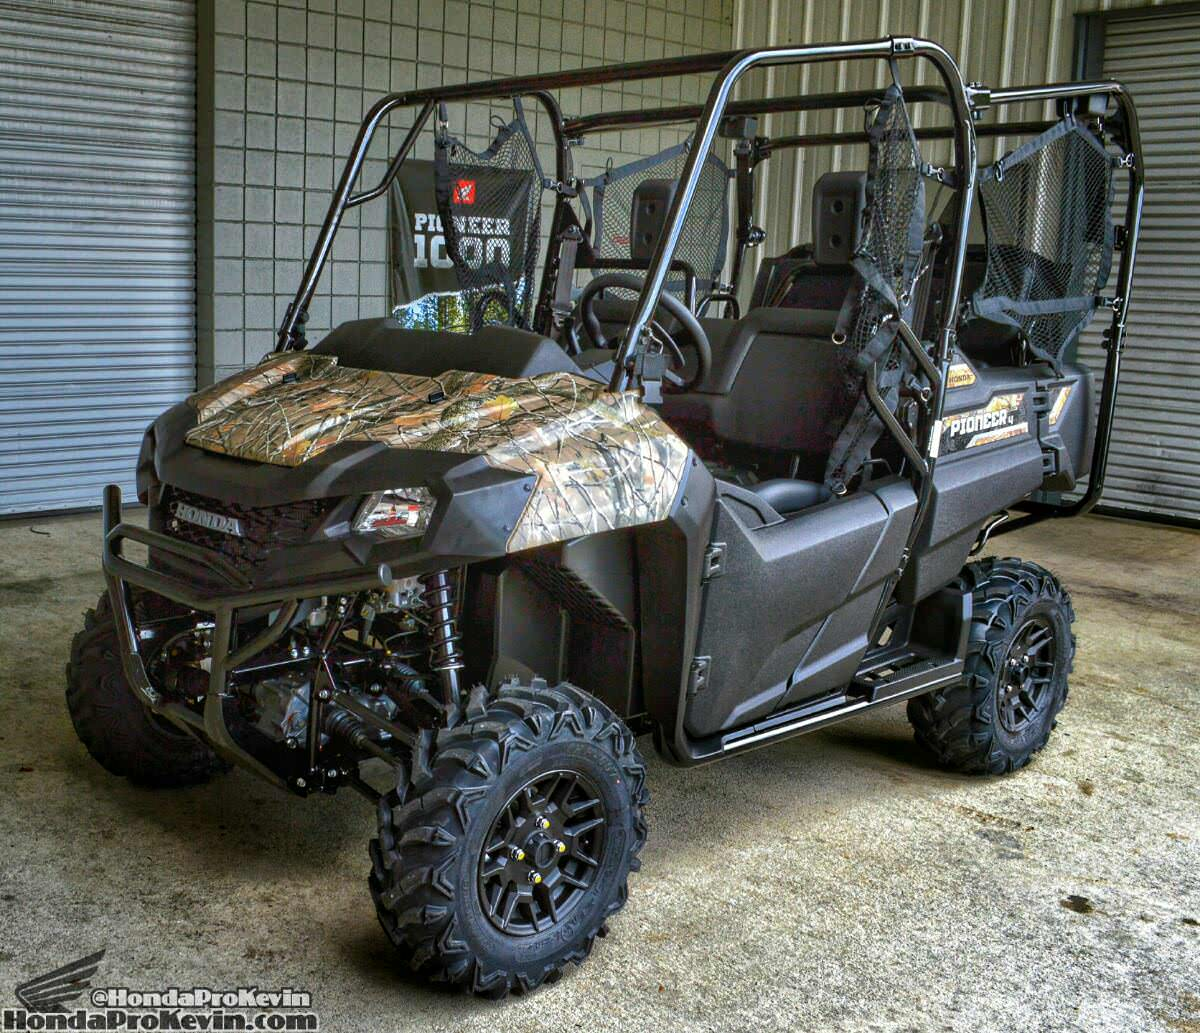 2018 Honda Pioneer 700-4 Deluxe Review / Specs - Side by Side ATV / UTV / SxS Utility Vehicle 4x4 - Phantom Camo SXS700 / SXS700M4